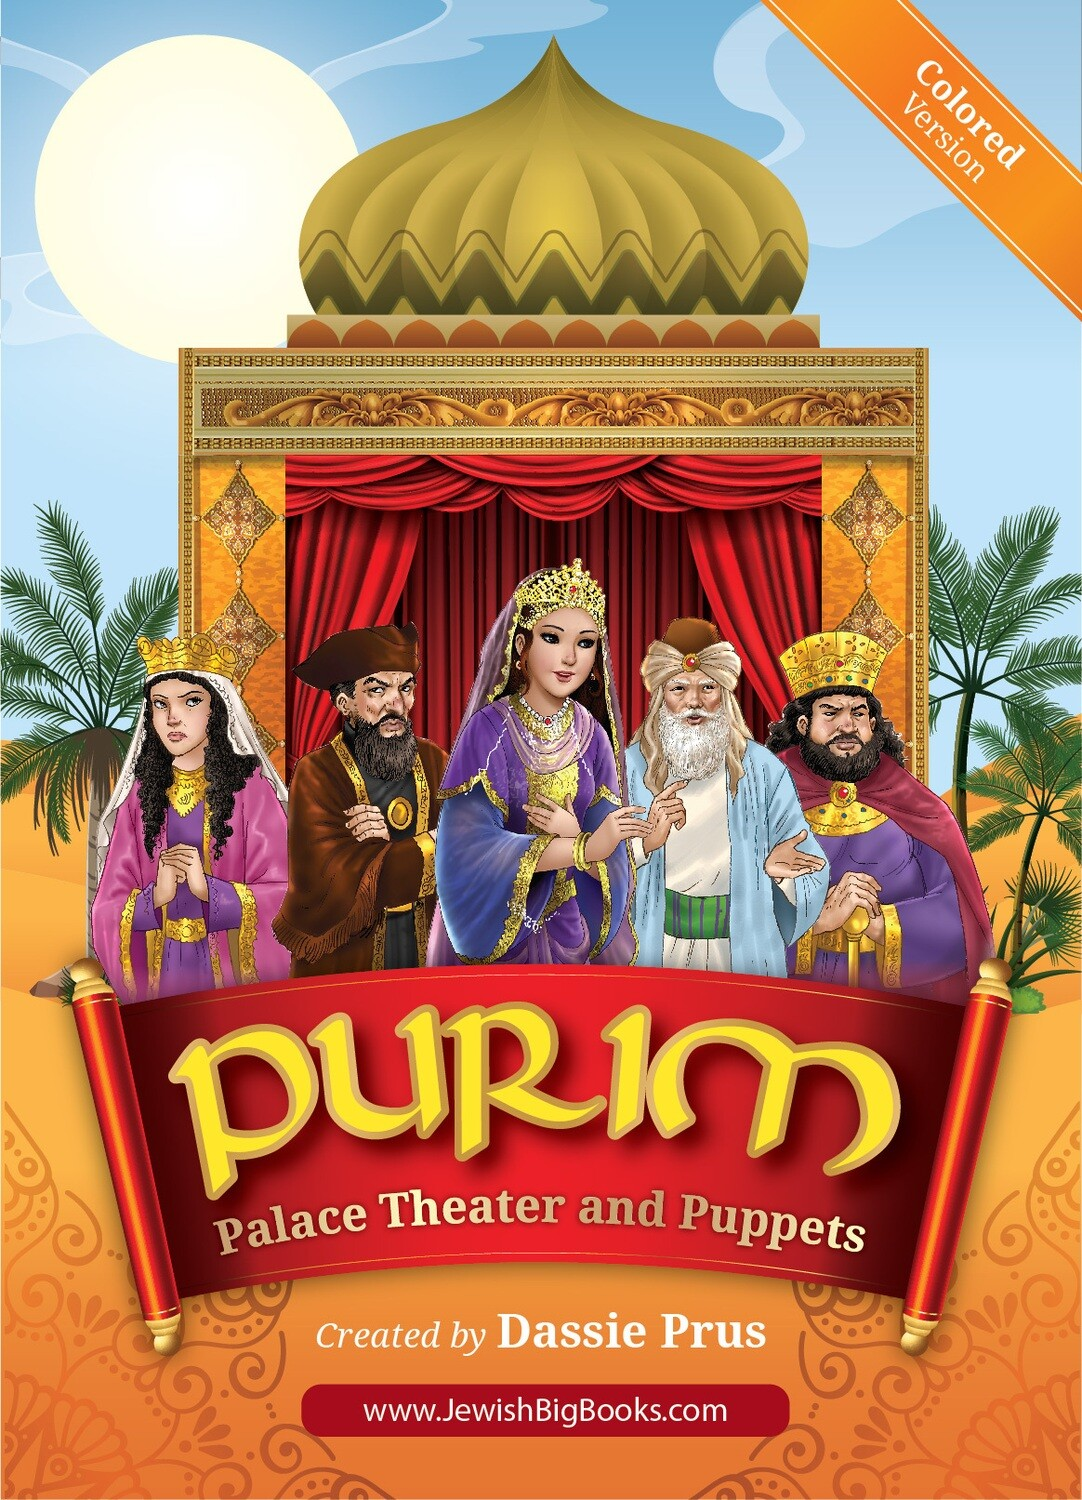 Printable Palace Theater & Puppets